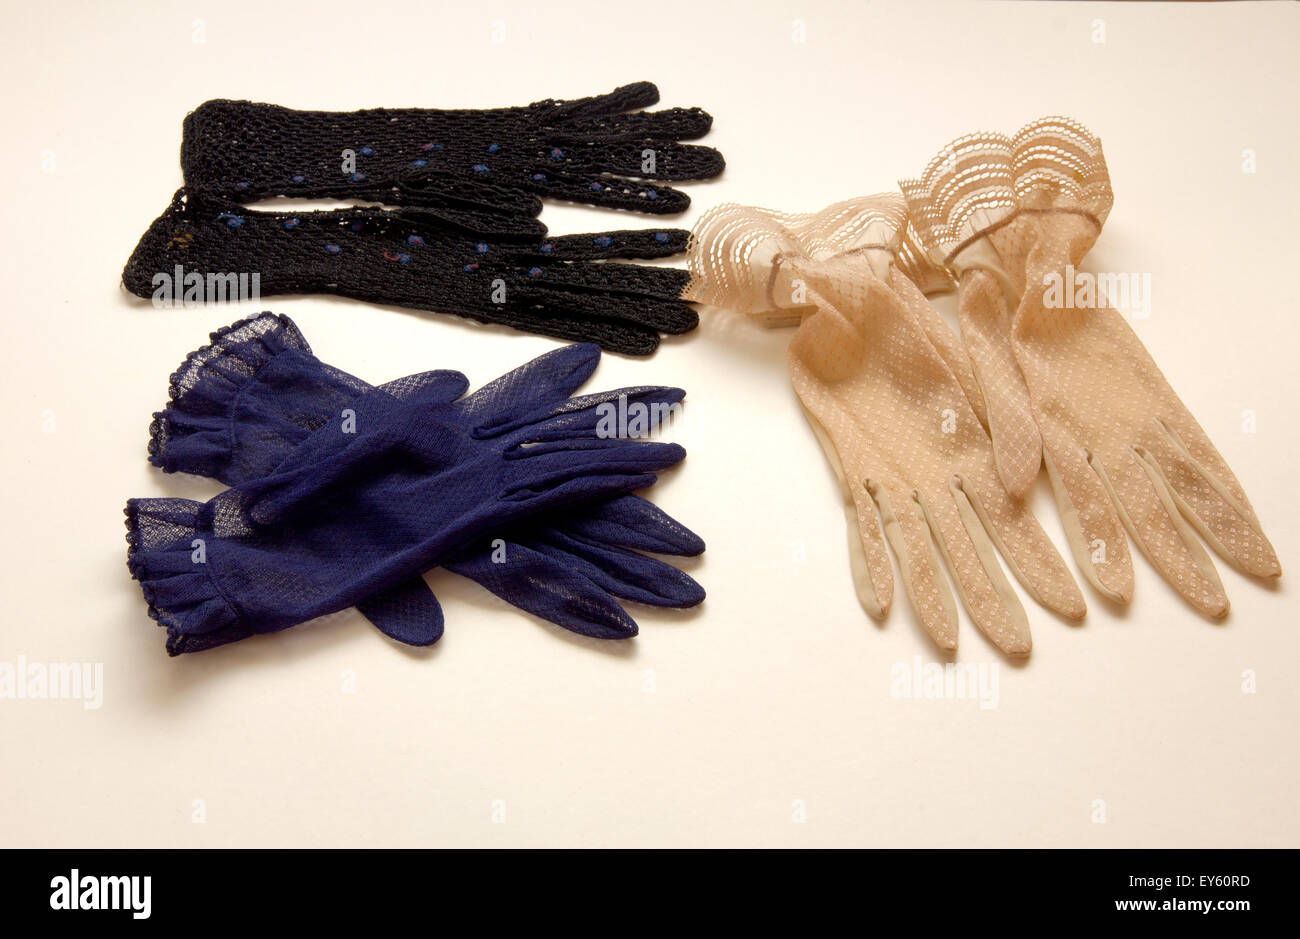 Fifties Fashion Ladies Gloves - Stock Image